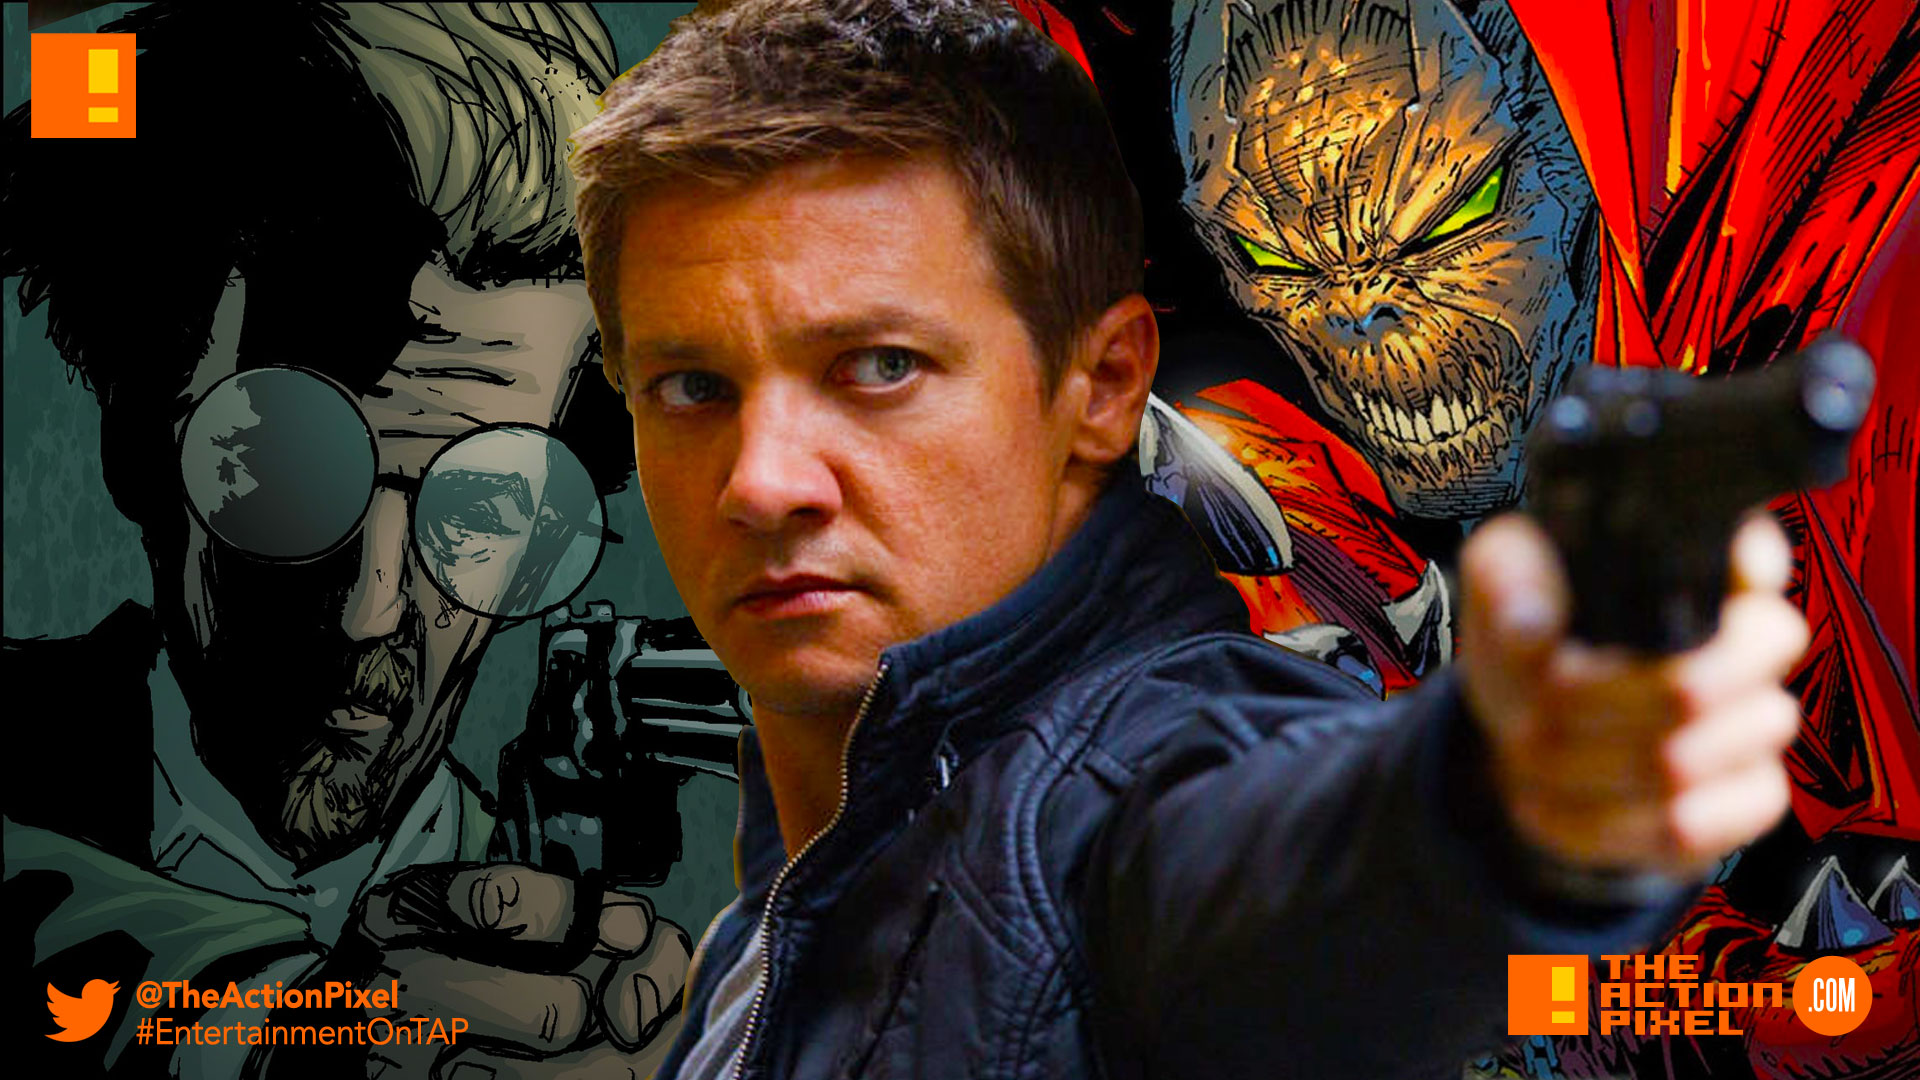 jamie foxx, spawn, todd mcfarlane, blumhouse,blum, the action pixel, entertainment on tap,detective 'twitch' williams, jeremy renner, twitch